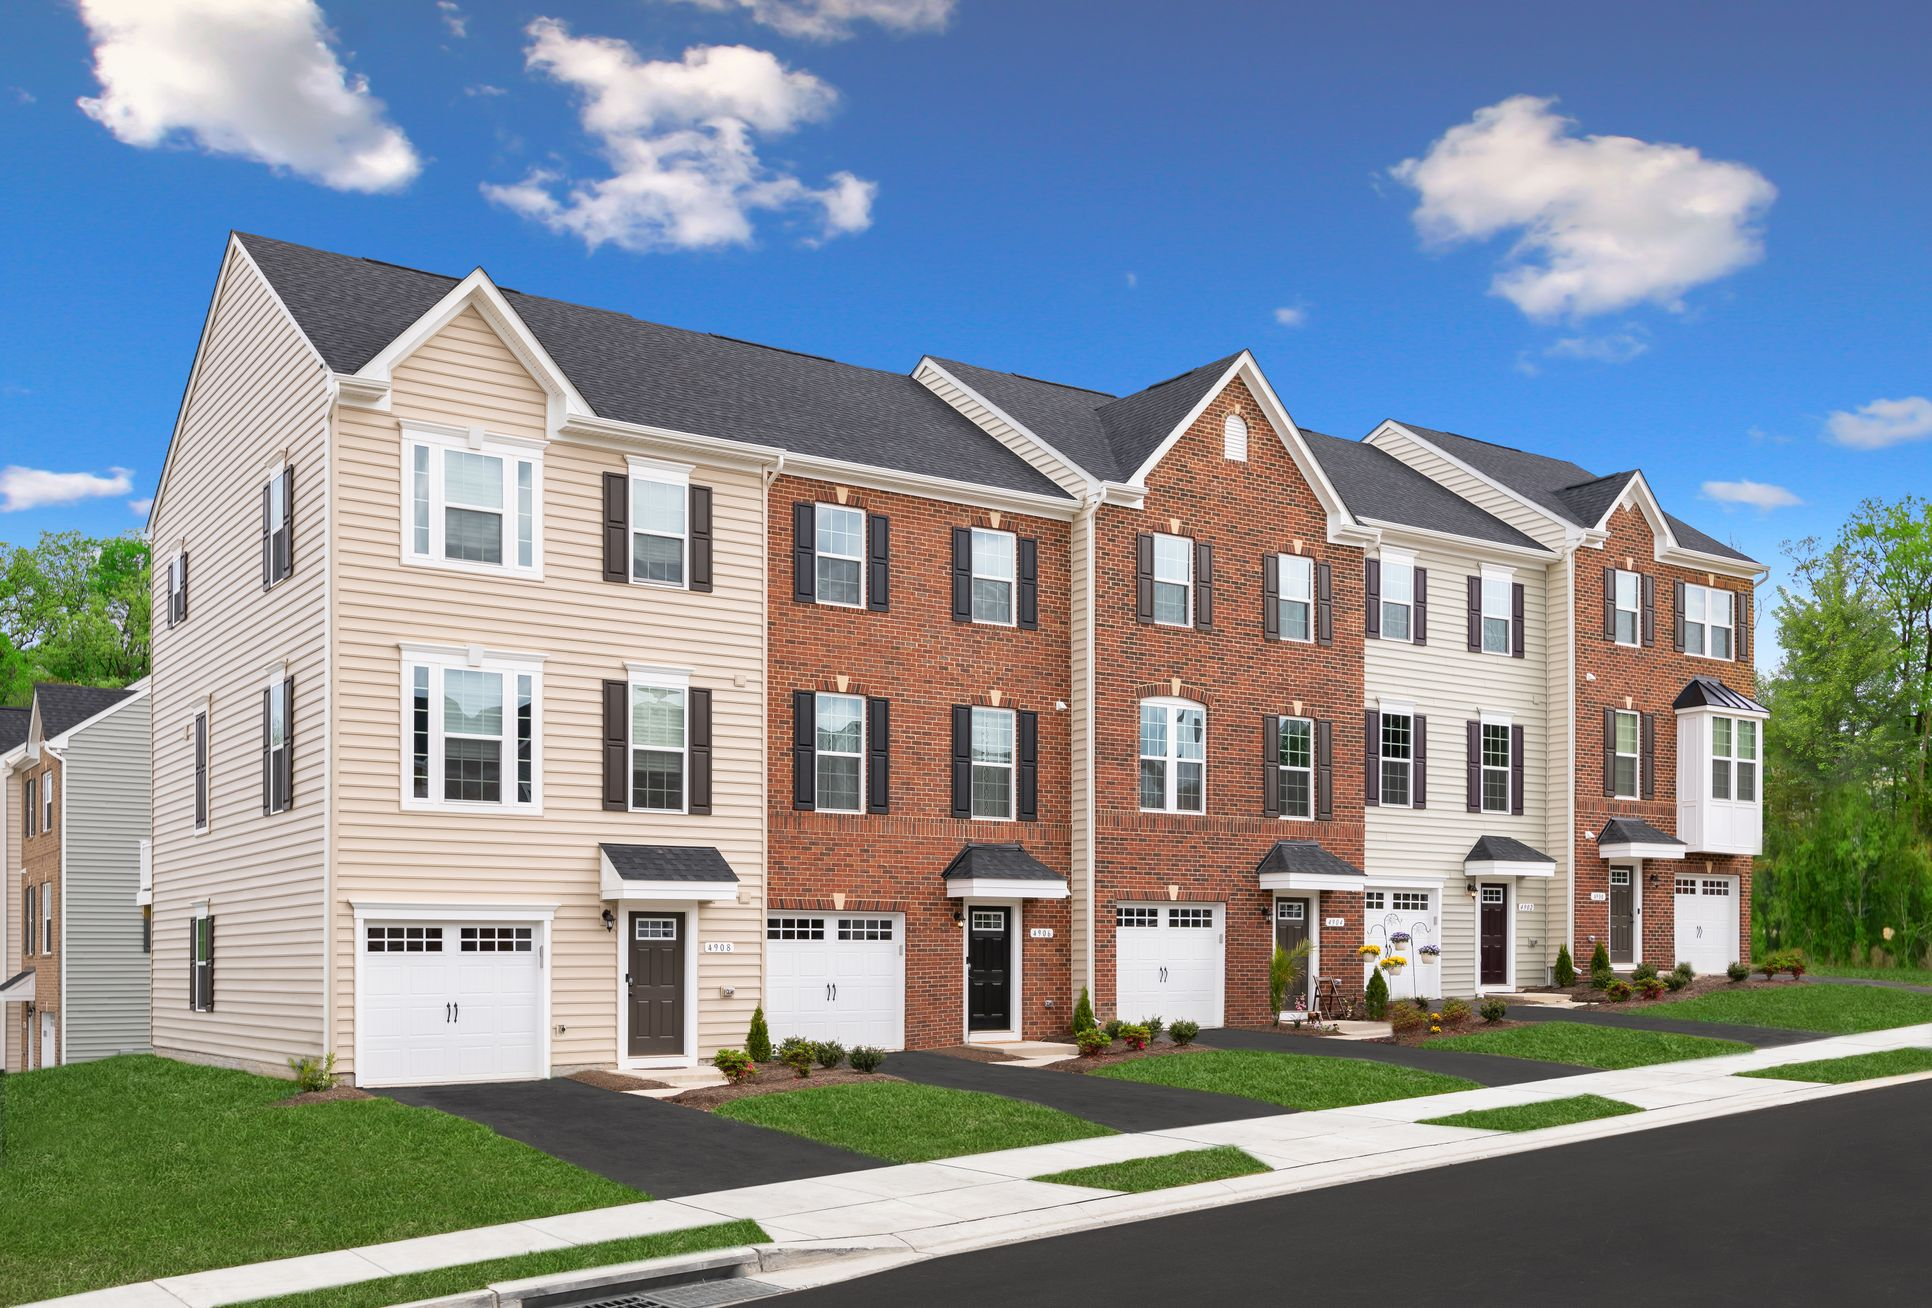 ONLY NEW TOWNHOMES IN ATHOLTON SCHOOL DISTRICT:Hidden Ridge is Now Selling to VIPs!This exclusive community of limited homesites starts from the upper $400s and features several quick move ins.Join Our VIP List Today!